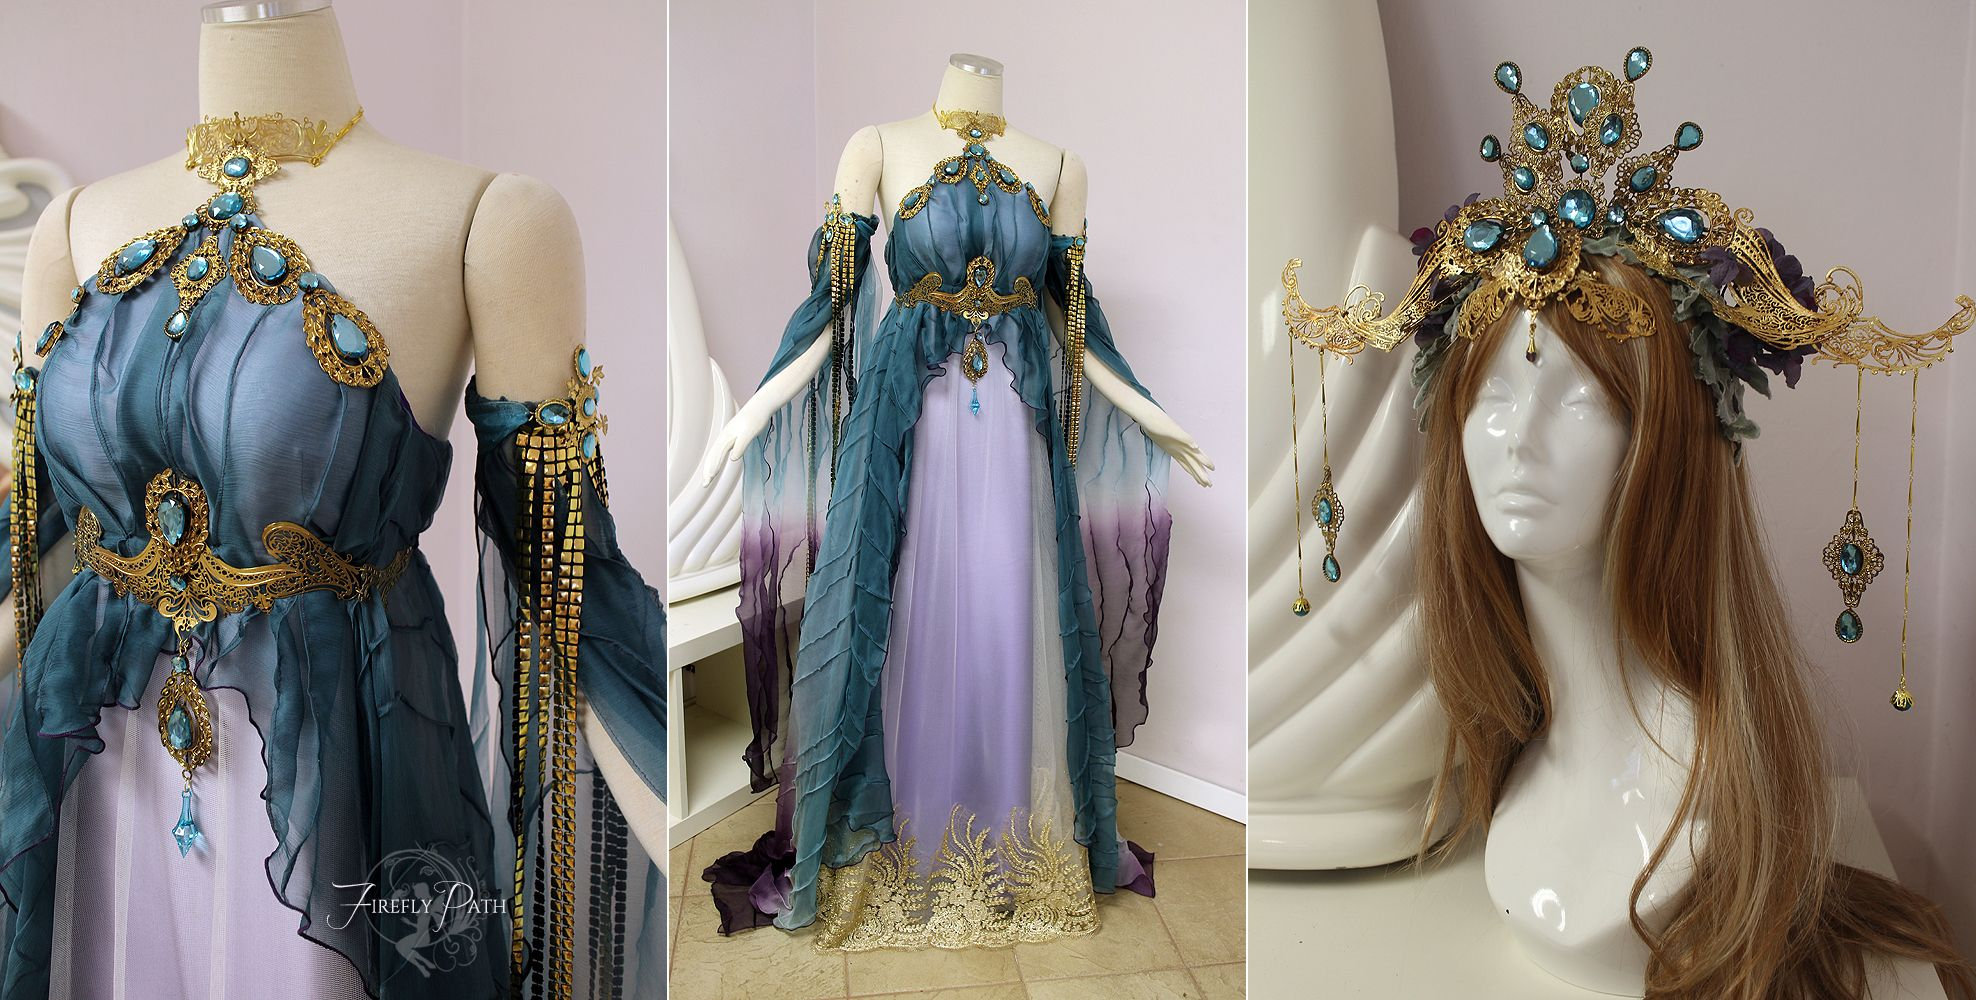 Empress of the Elves by Lillyxandra wedding ballroom gown